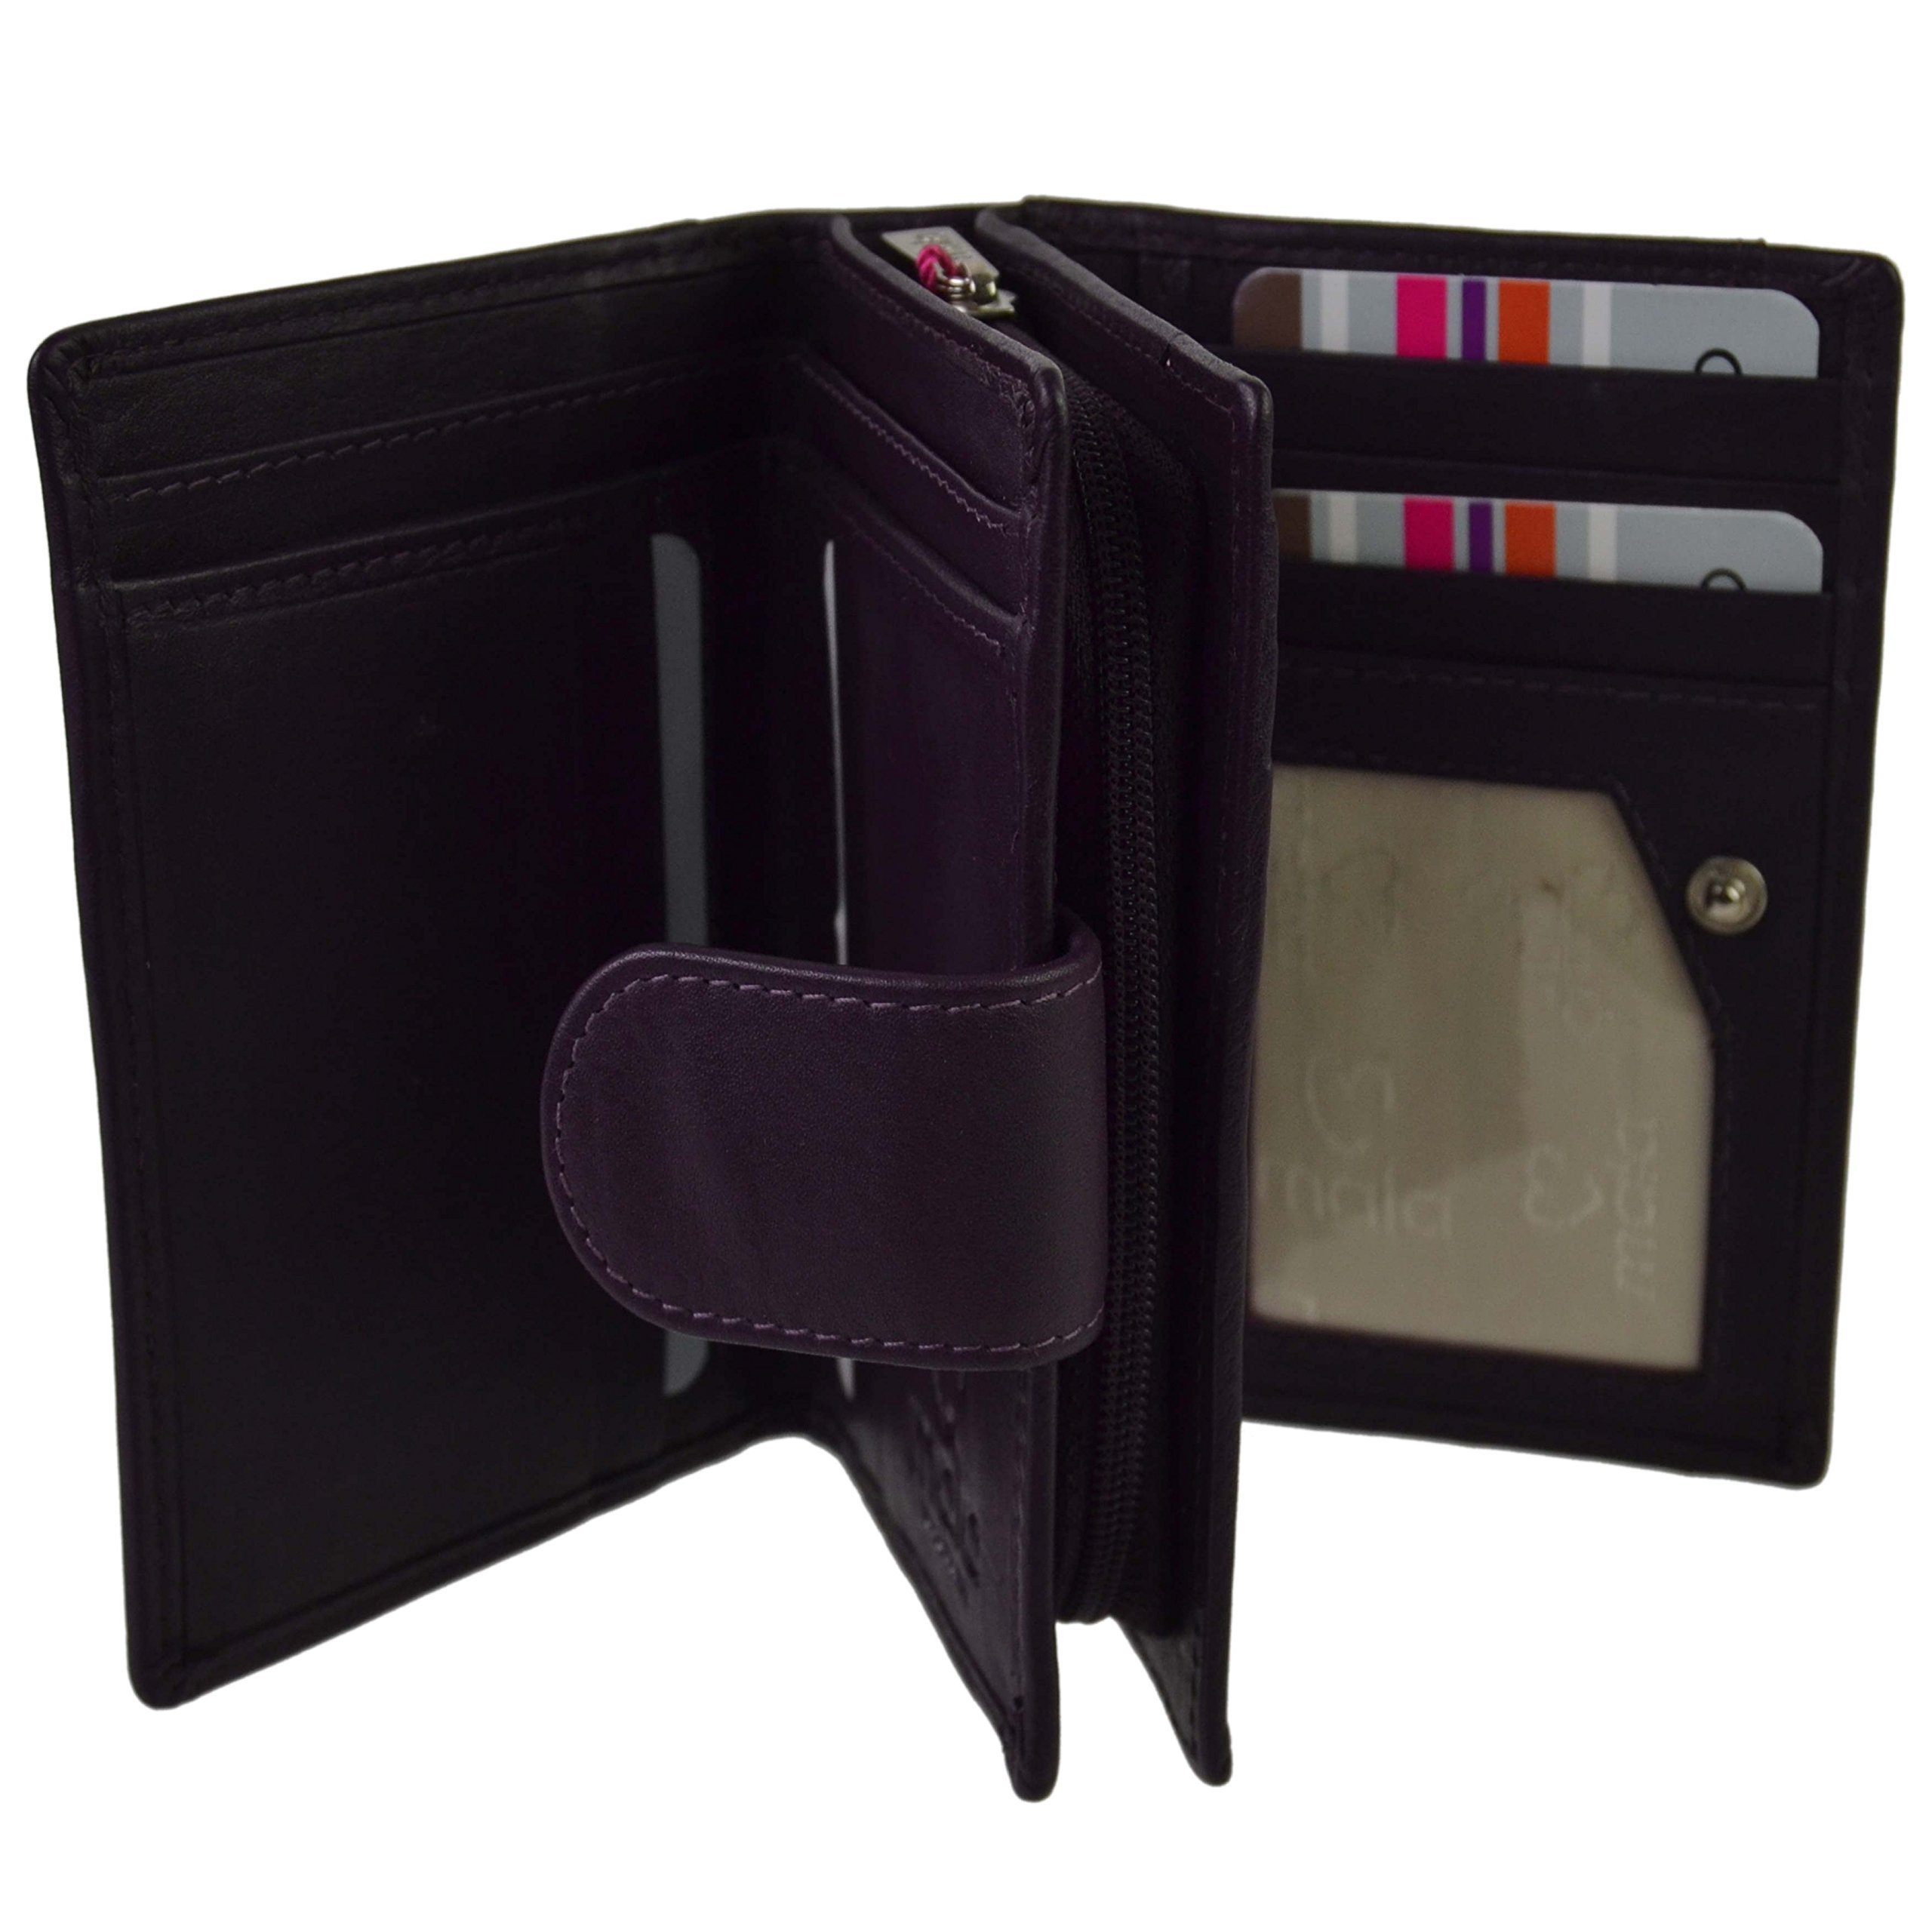 Mala Leather Women's Compact Leather Tabbed Rfid Protection Purse/Wallet One Size Plum